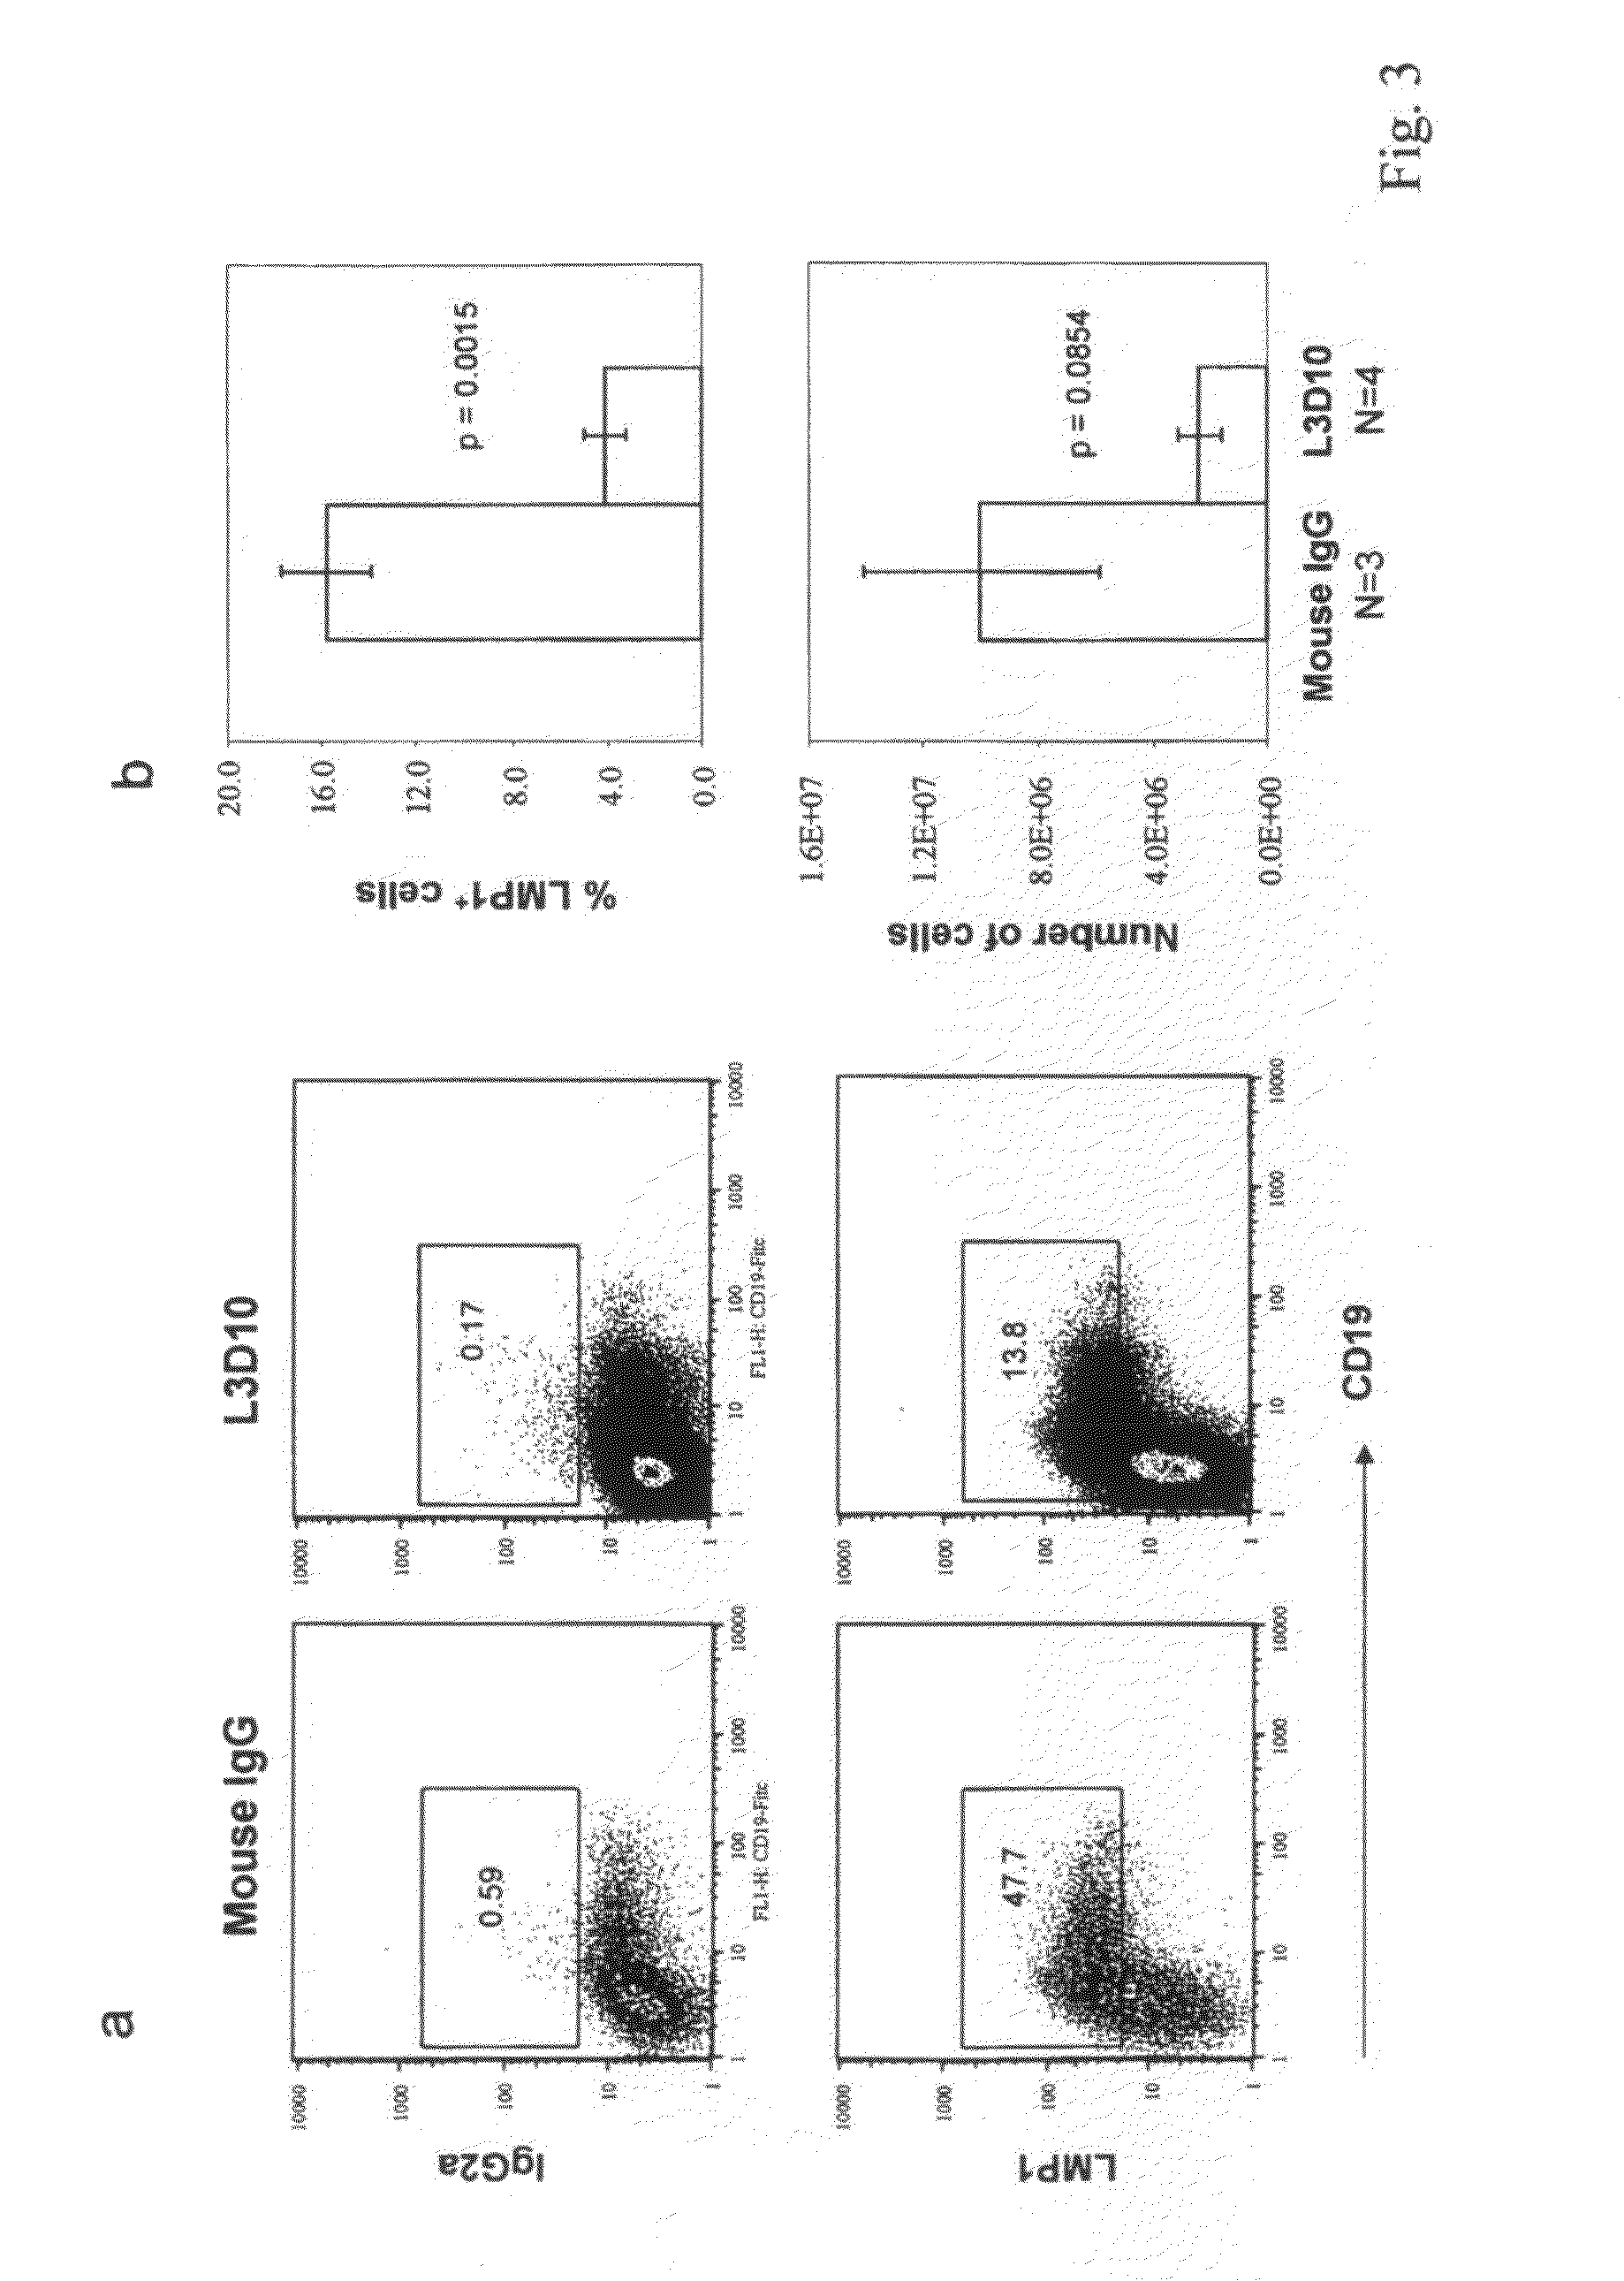 Monoclonal antibodies as a therapeutic approach for cancer Essay